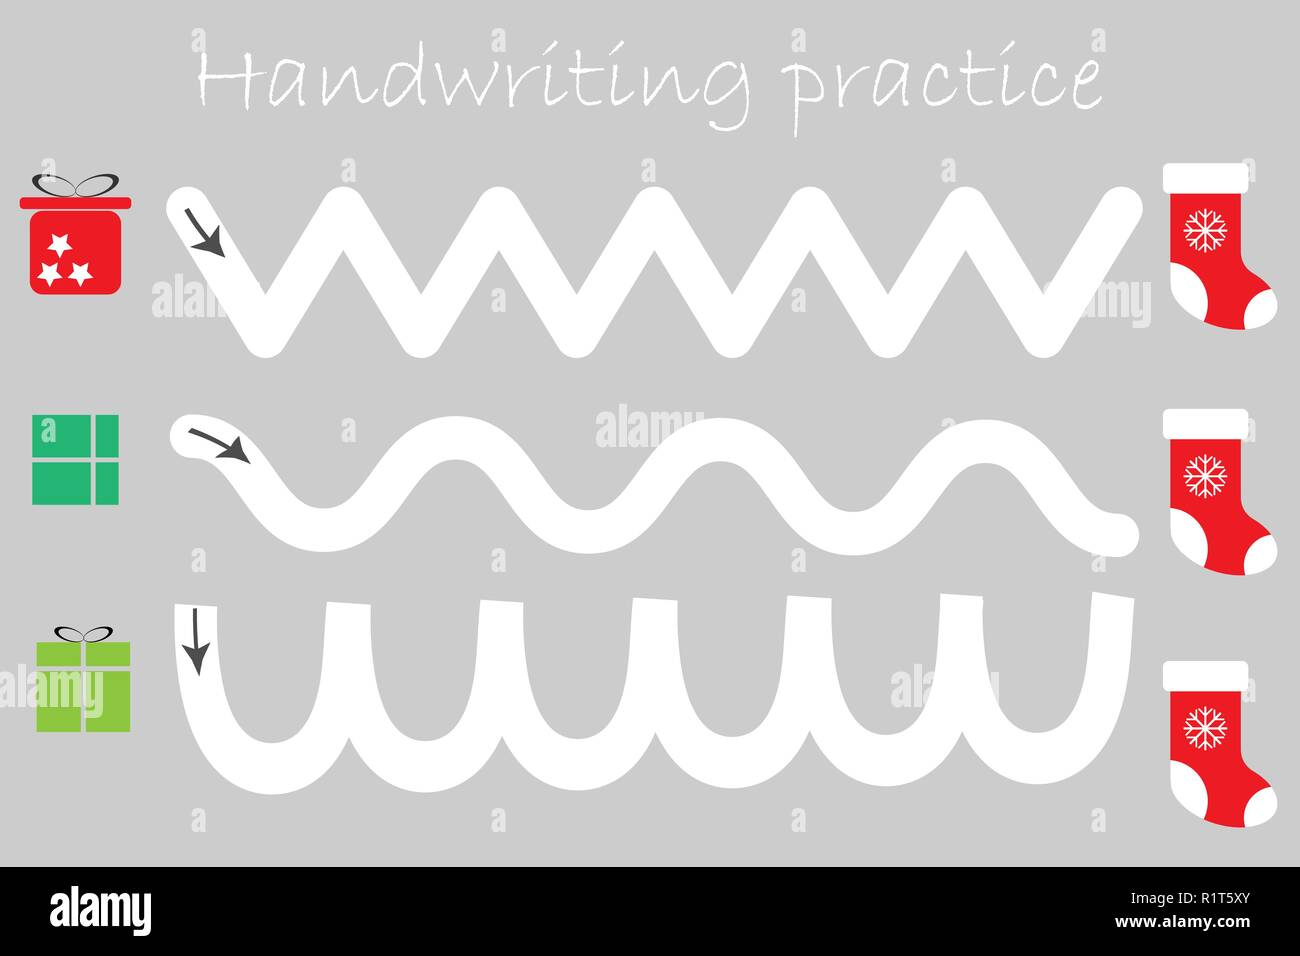 Handwriting Practice High Resolution Stock Photography And